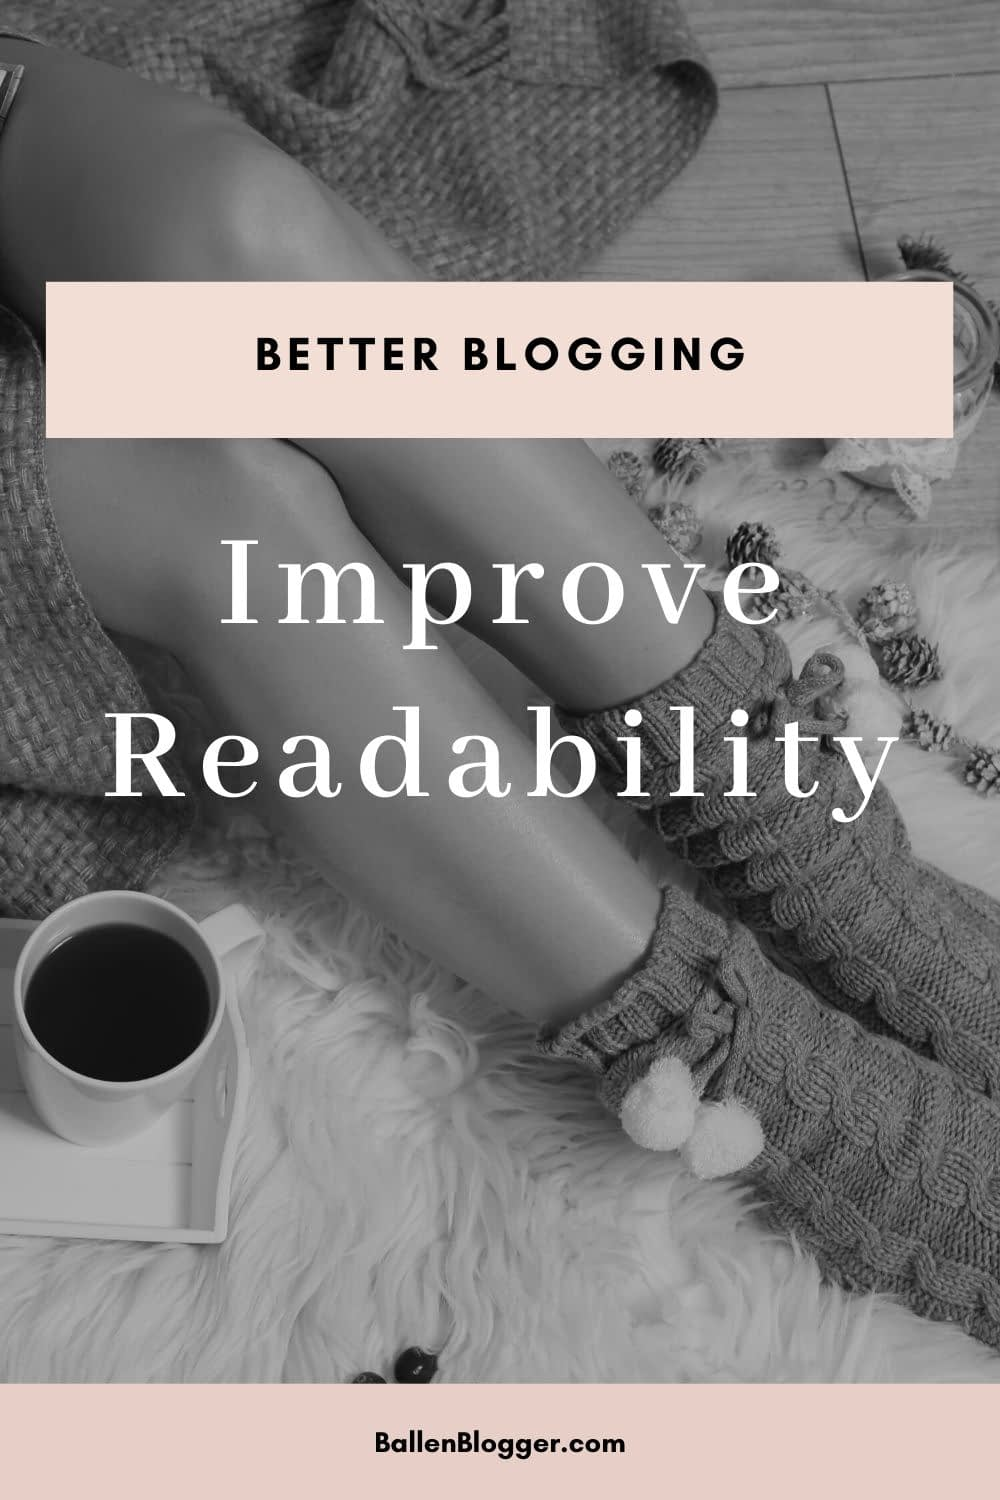 To improve the readability of your content, set the body font size to 16 pixels.